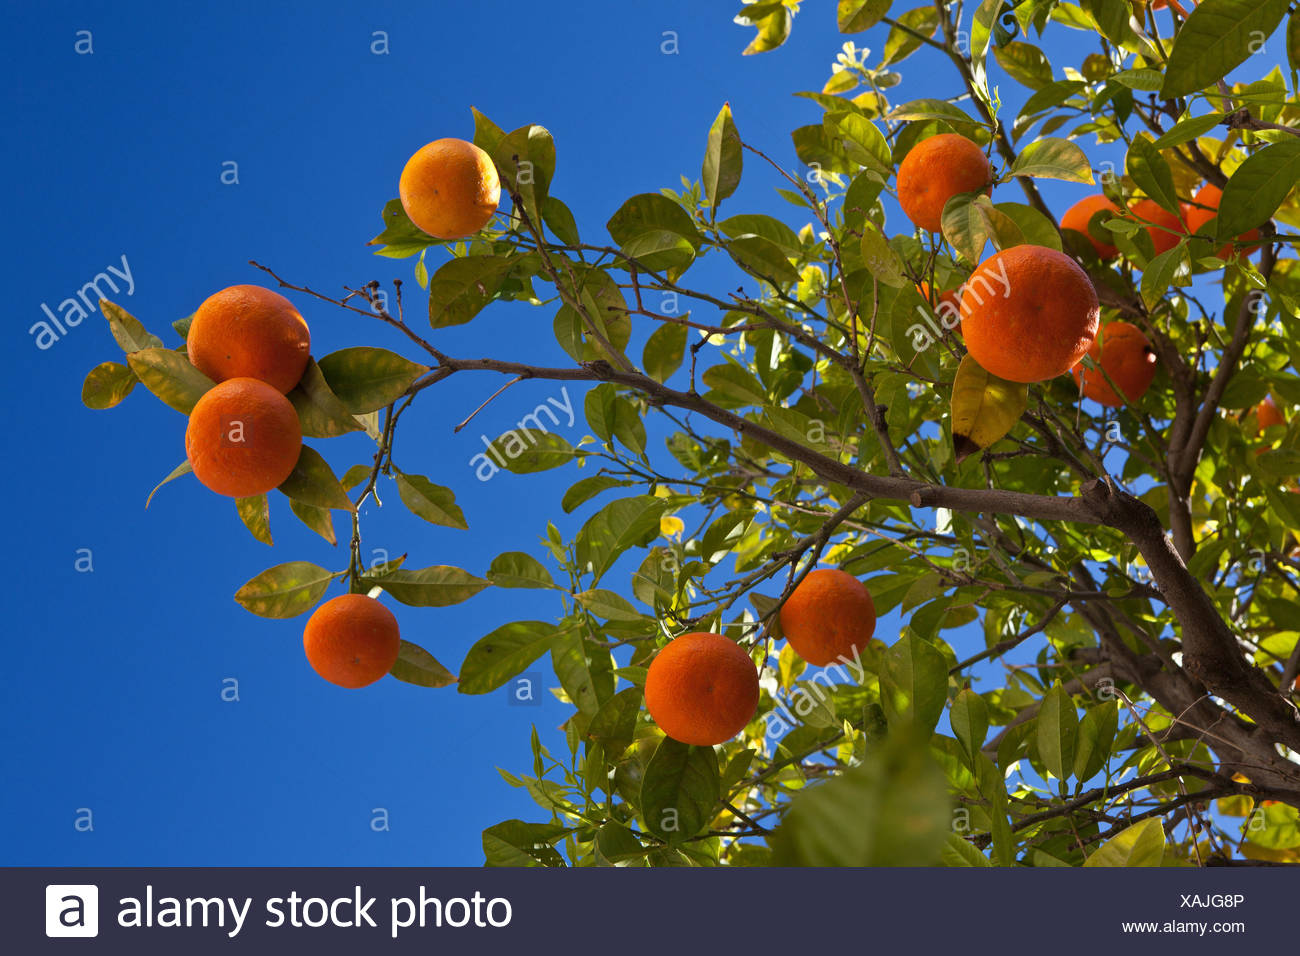 Orange tree (Citrus sinensis), with mature fruits in front of a clear blue sky, Spain, Andalusia - Stock Image